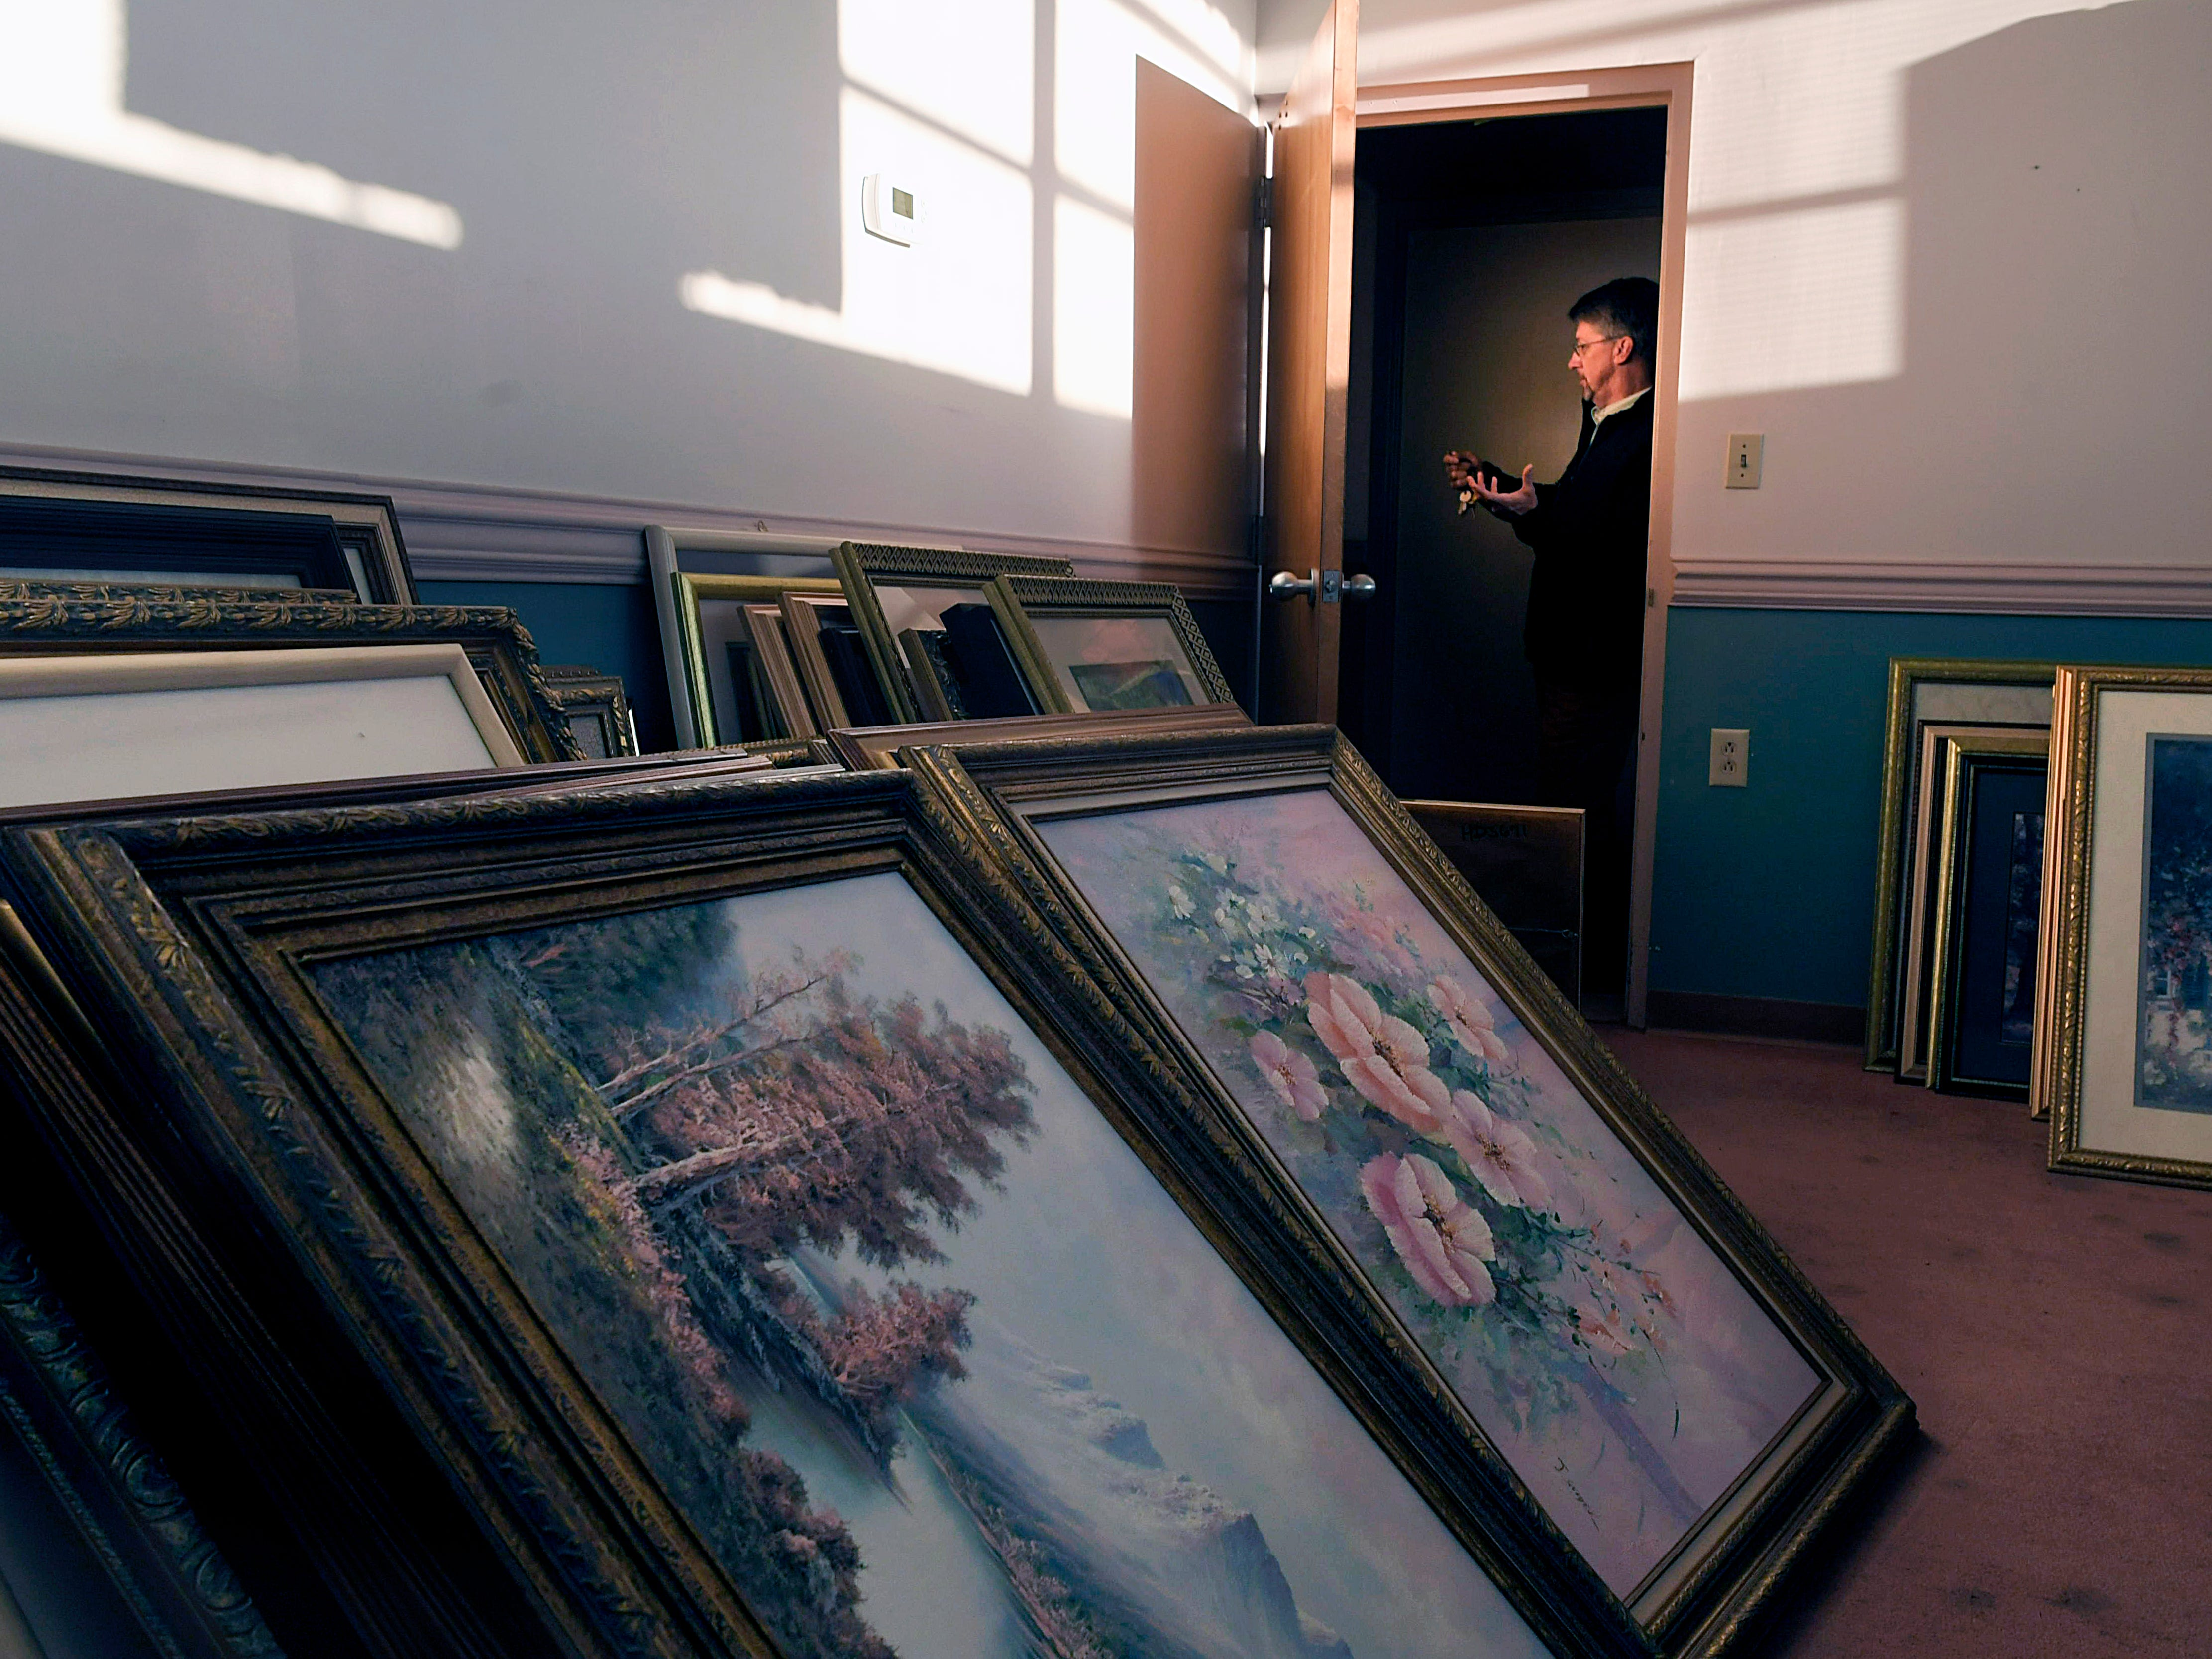 Mayor of Ducktown Mayor Doug Collins stands in a conference room filled with framed artwork inside the town's shuttered hospital, Copper Basin Medical Center in Ducktown, Tennessee on Dec. 5, 2018. Copper Basin Medical Center closed 15 months ago due to mounting debt.